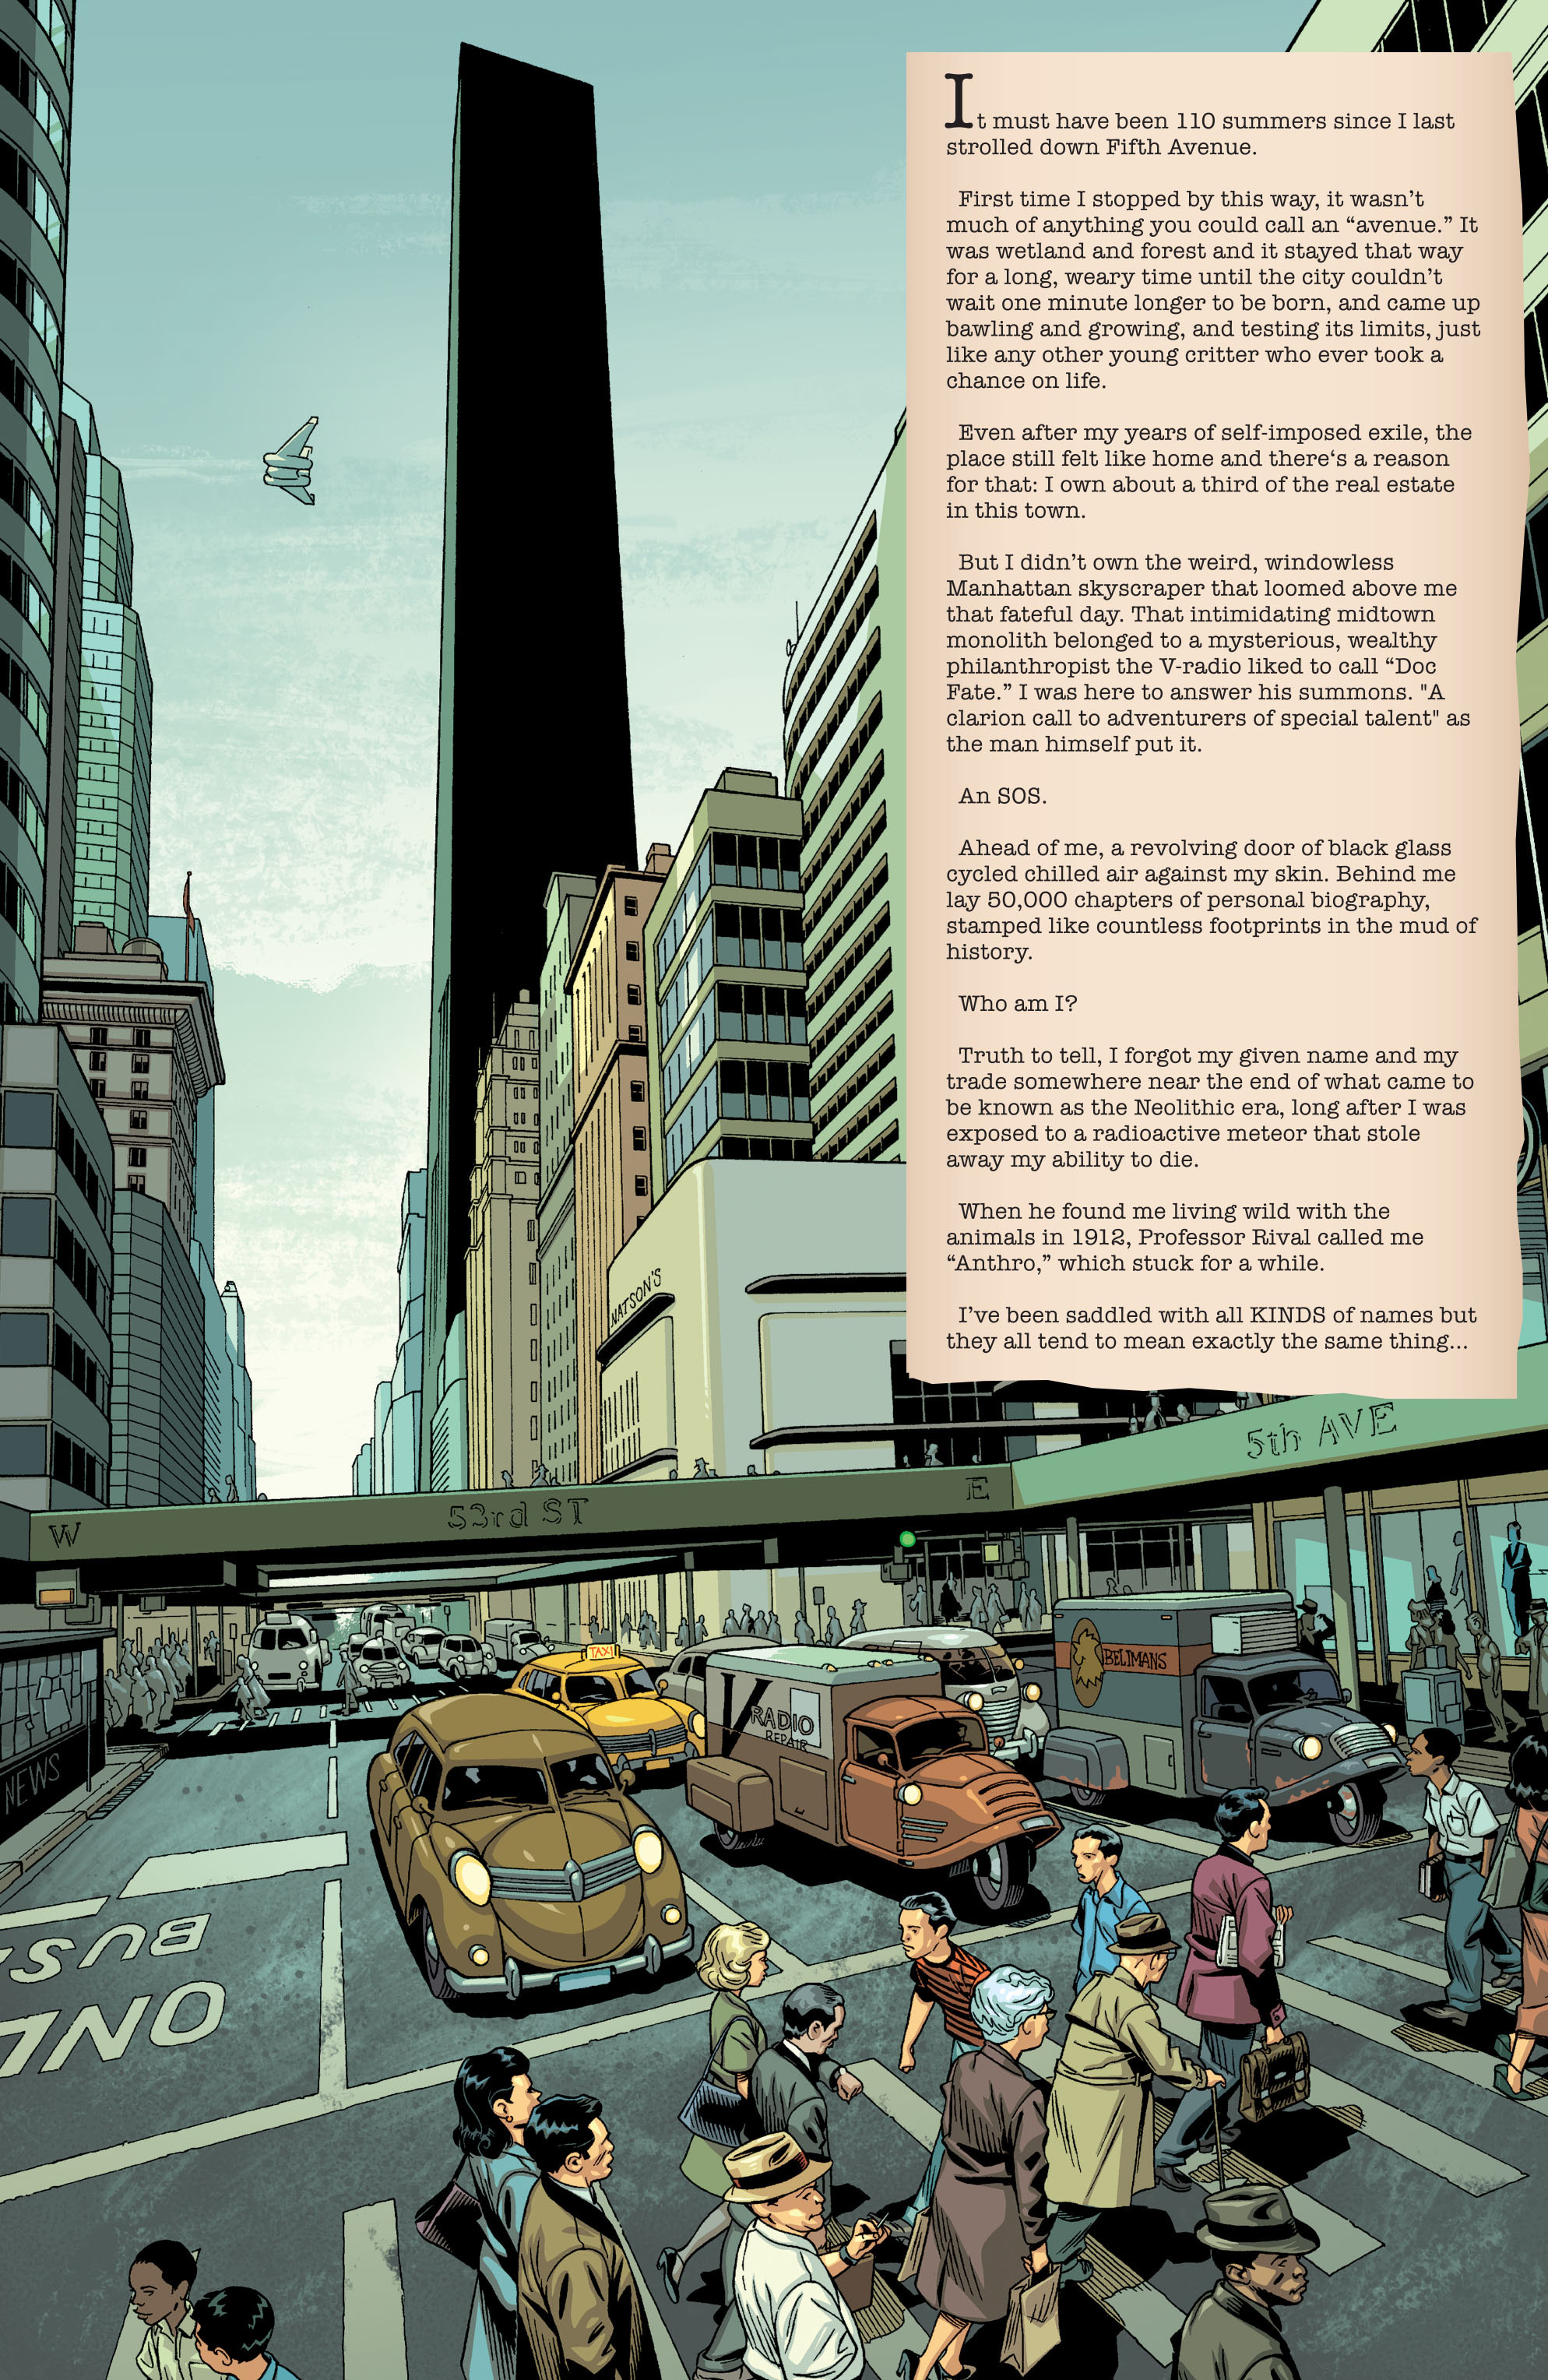 The Multiversity: The Society of Super-Heroes: Conquerors of the Counter-World Full Page 2